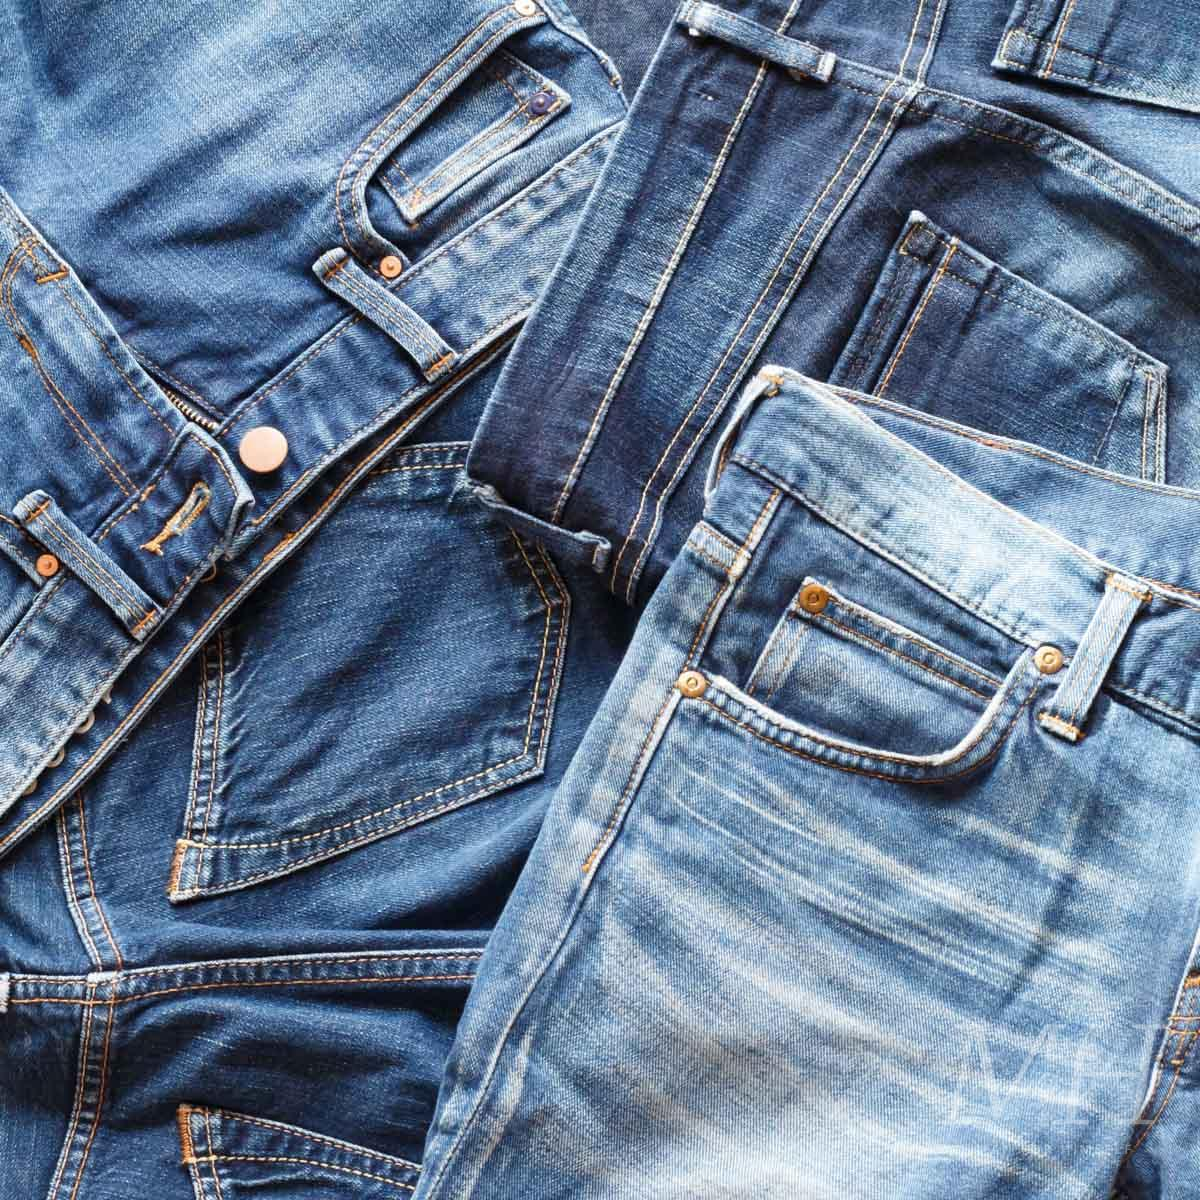 10-things-worth-buying-jeans-man-for-himself